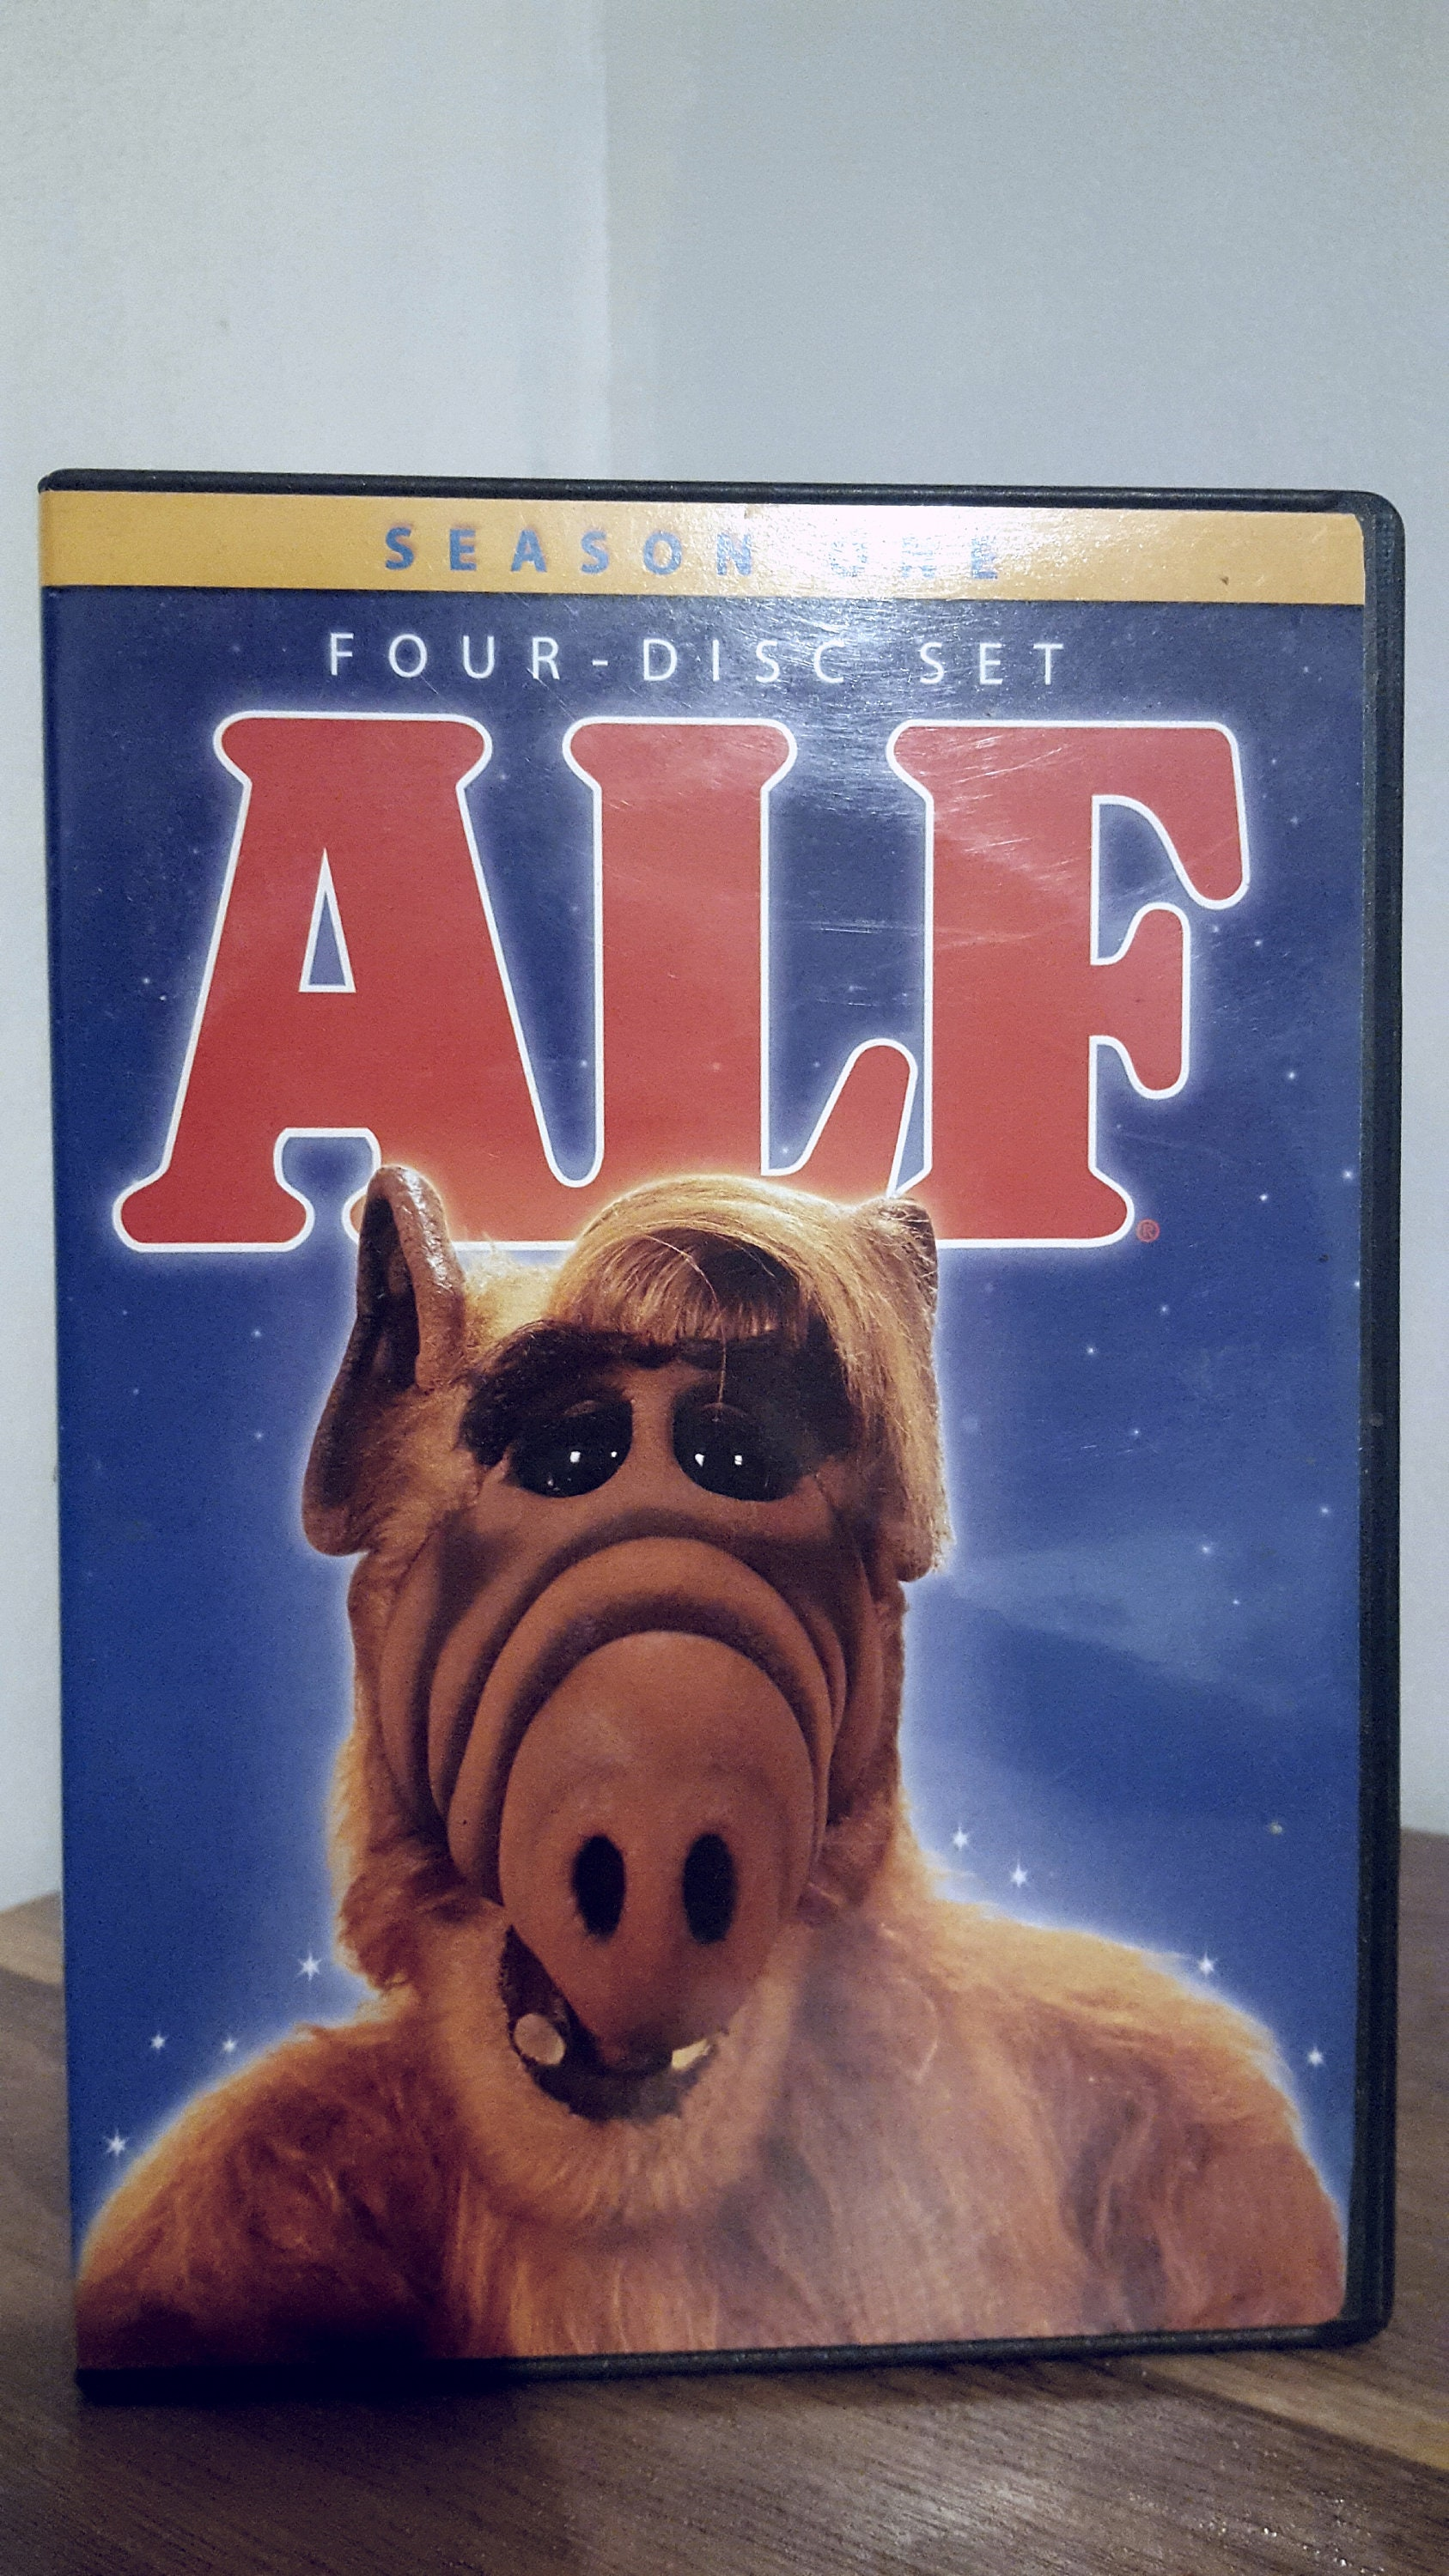 ALF Reviews: Come Fly With Me (season 1, episode 25